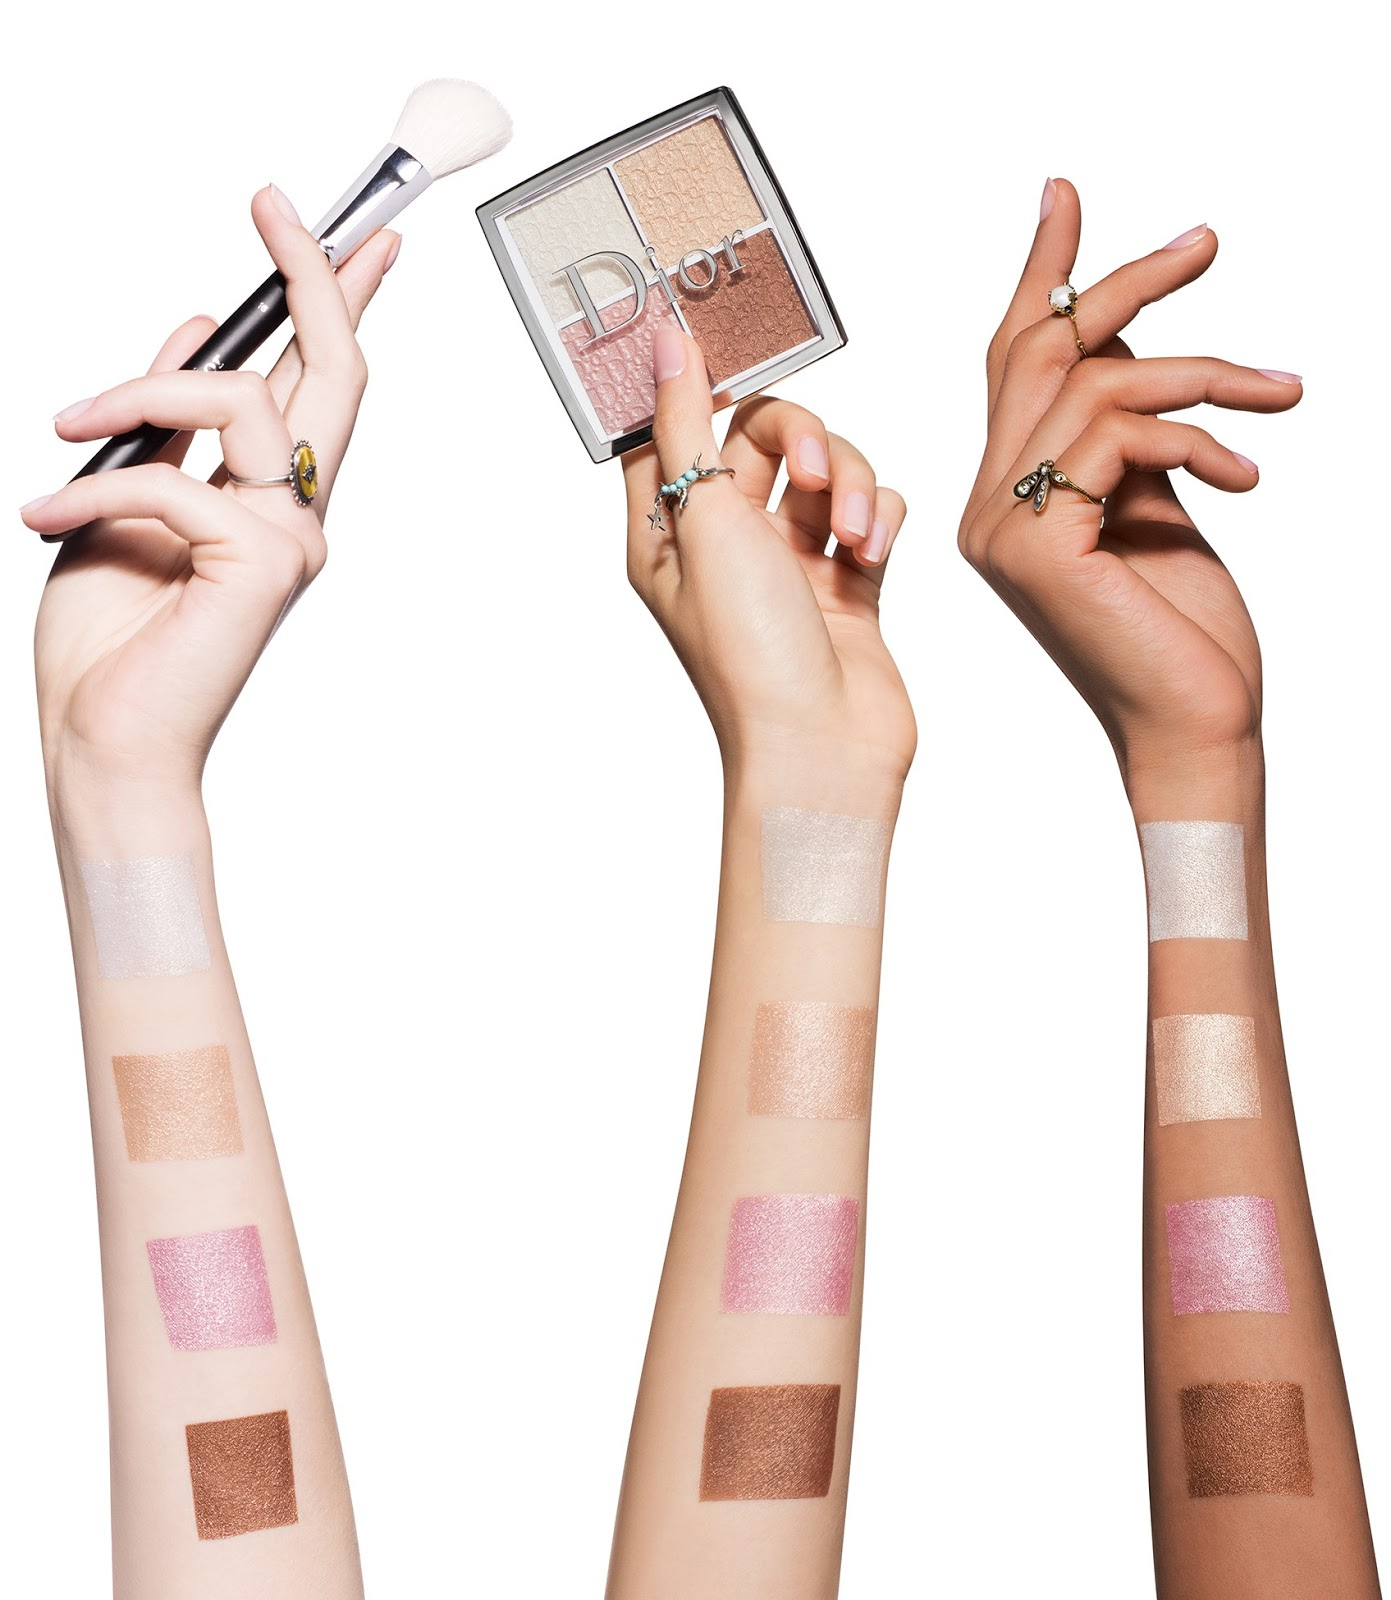 DIOR-BACKSTAGE-GLOW-FACE-PALETTE-swatch